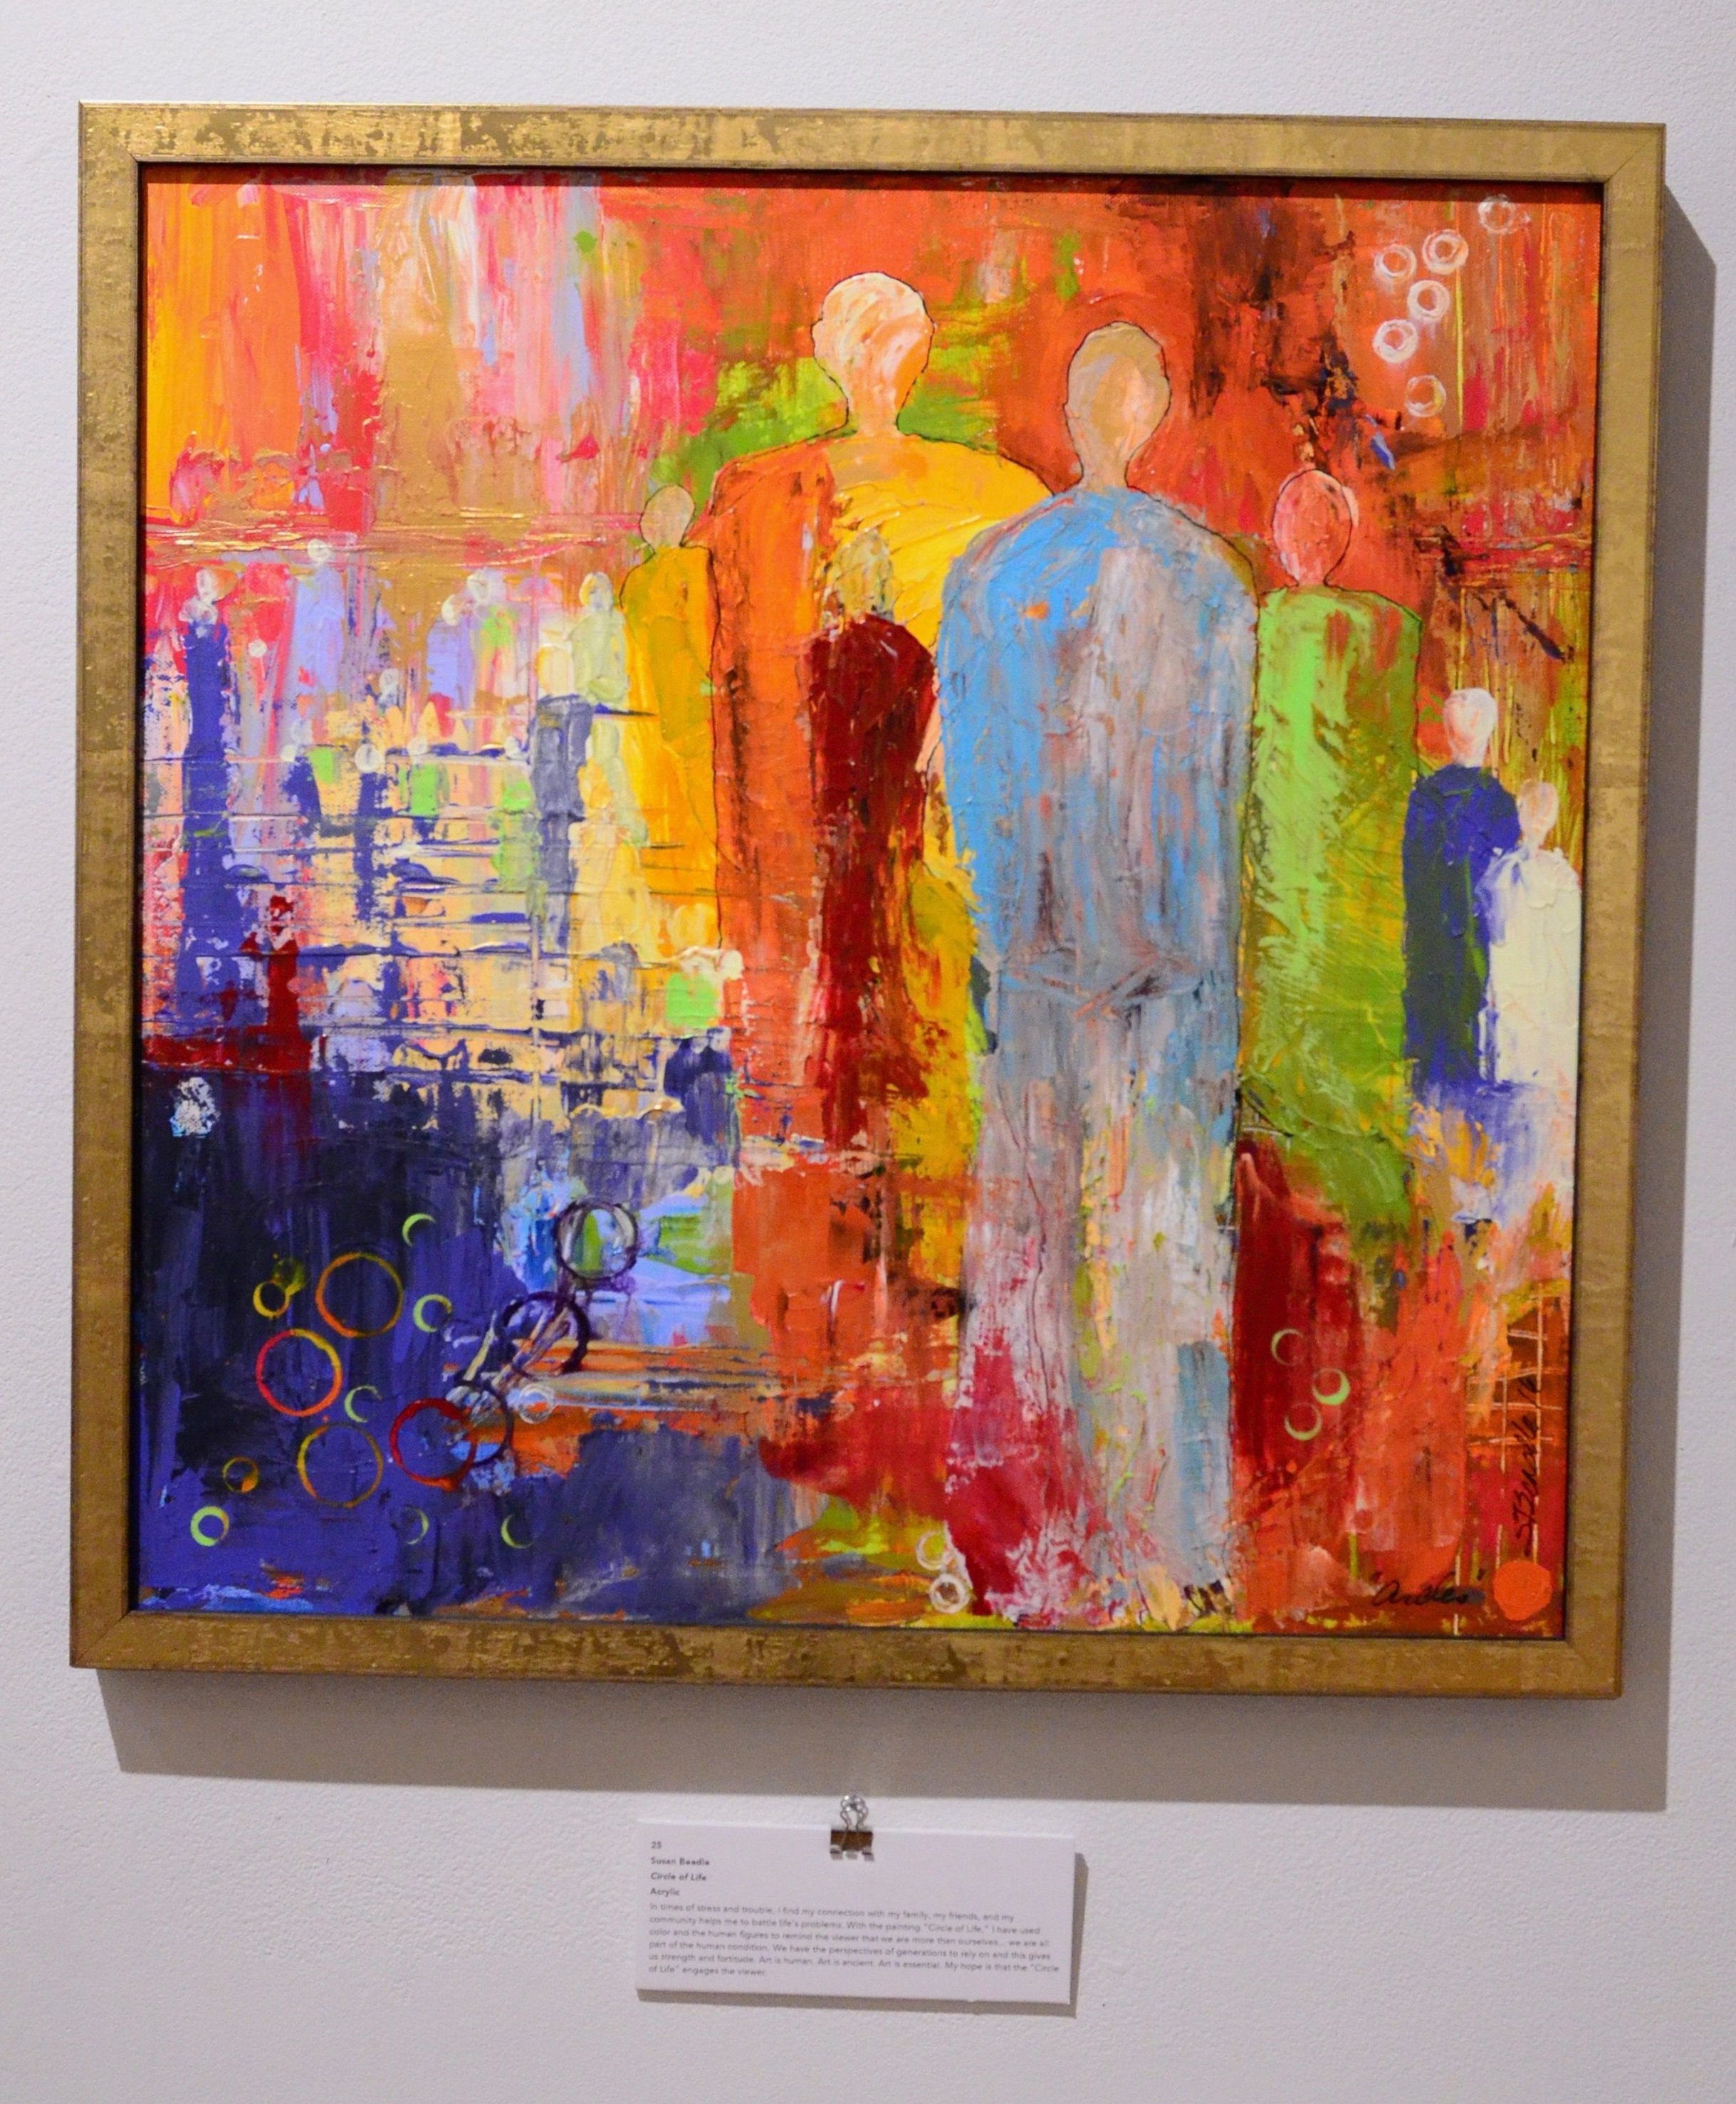 Circle of Life by Susan Beadle. Acrylic peice. Red and orange tones coat the top of the piece and create the bottom right portion of the background. Human figures span across the right side of the image. Deep and dark blue tones complete the bottom left corner of the background. Serious illness and caregiver